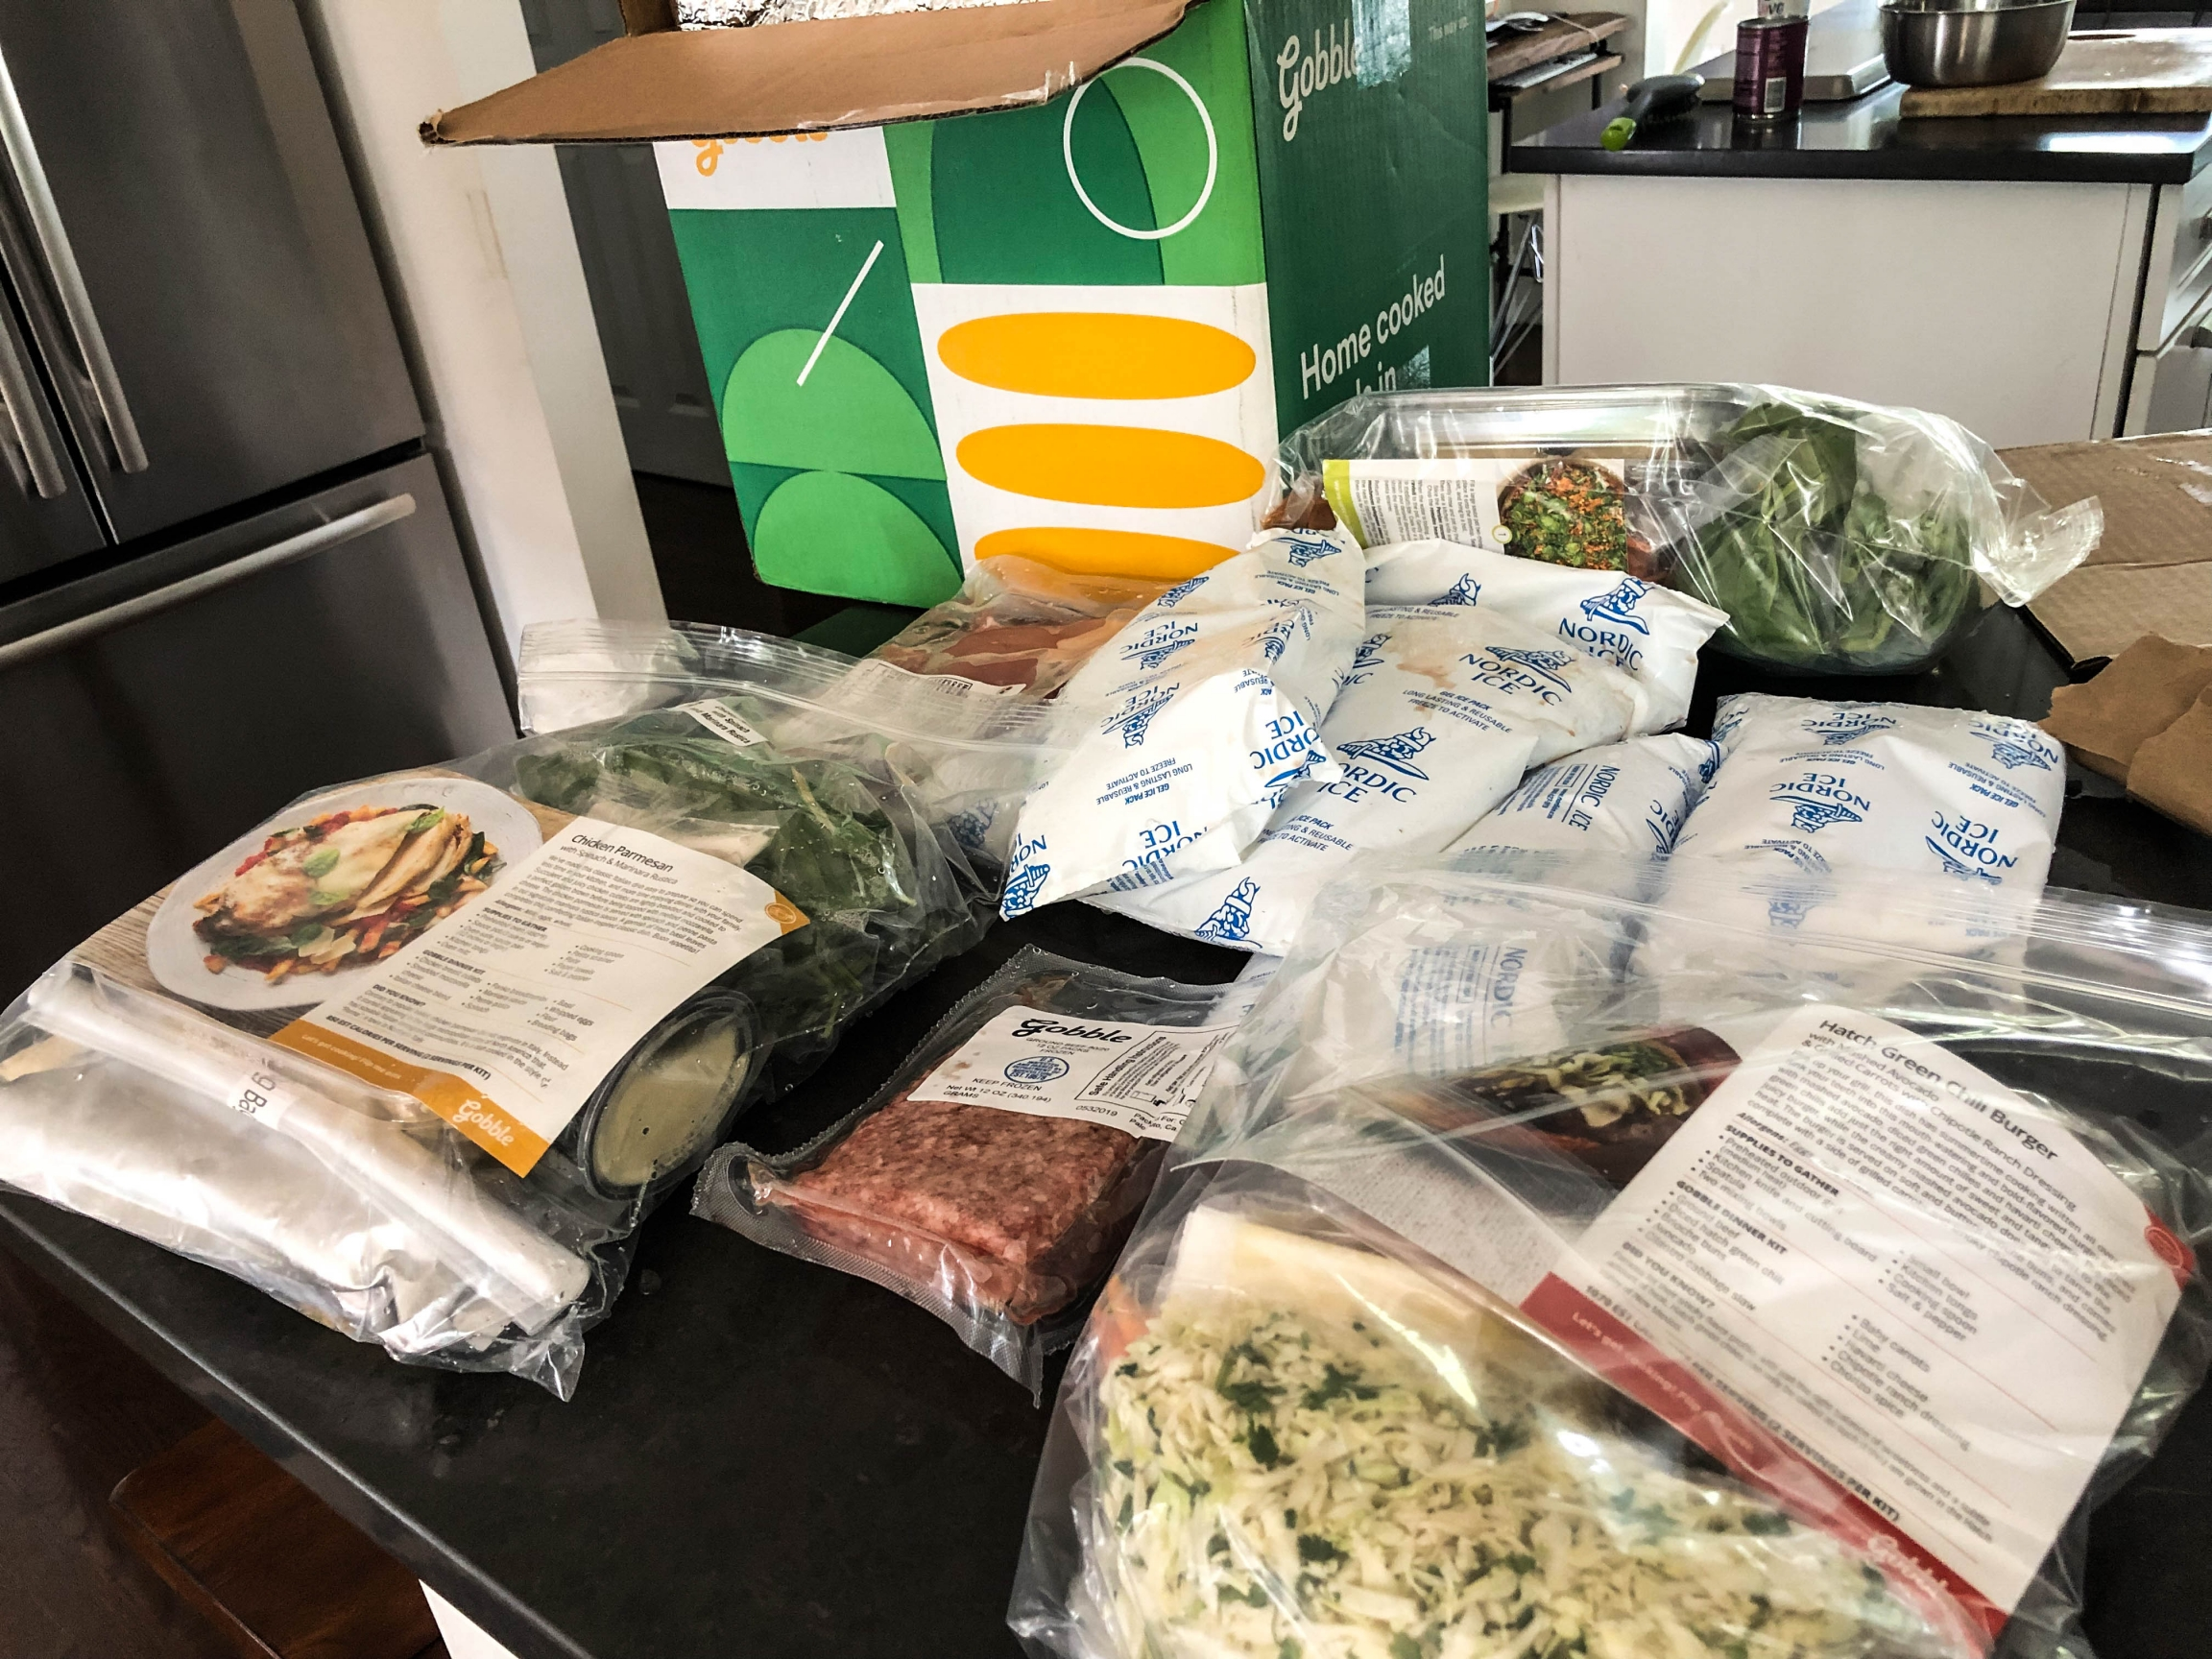 A meal kit is unboxed on a counter space. Food is wrapped in plastic packaging.